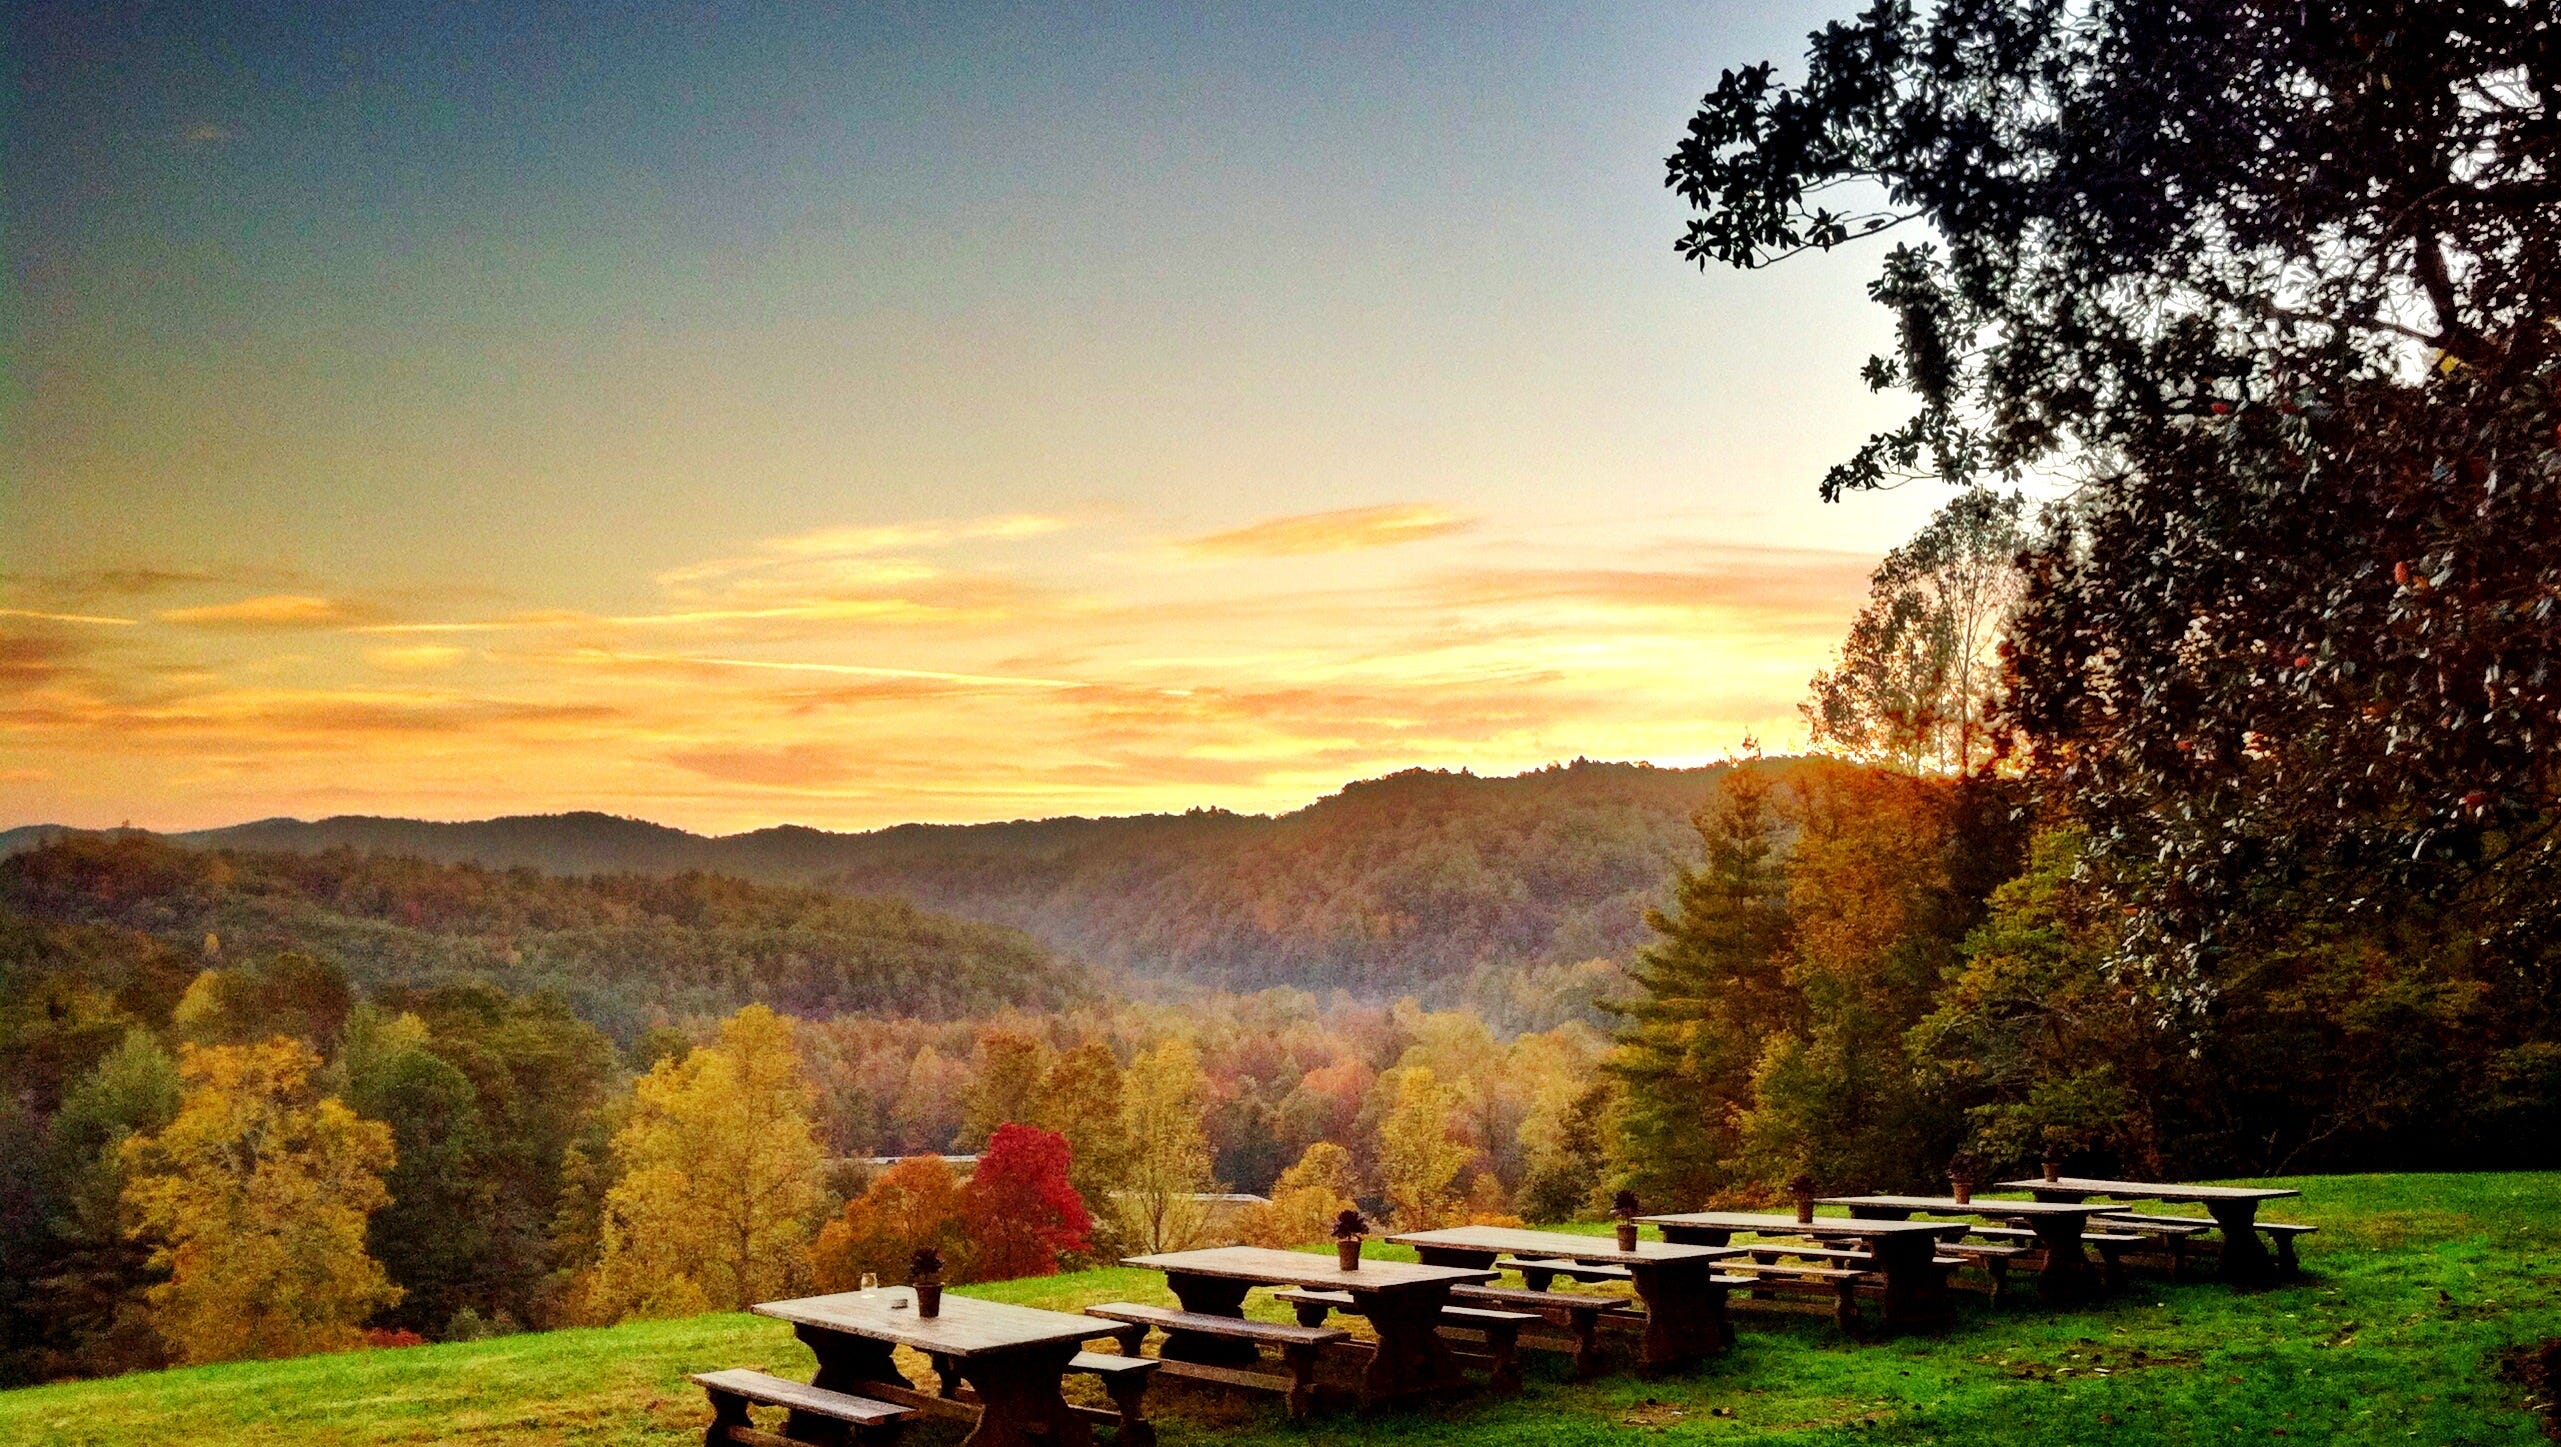 The sun reflects off the reds and yellows of the foliage on Blackberry Farm in Walland, Tenn.